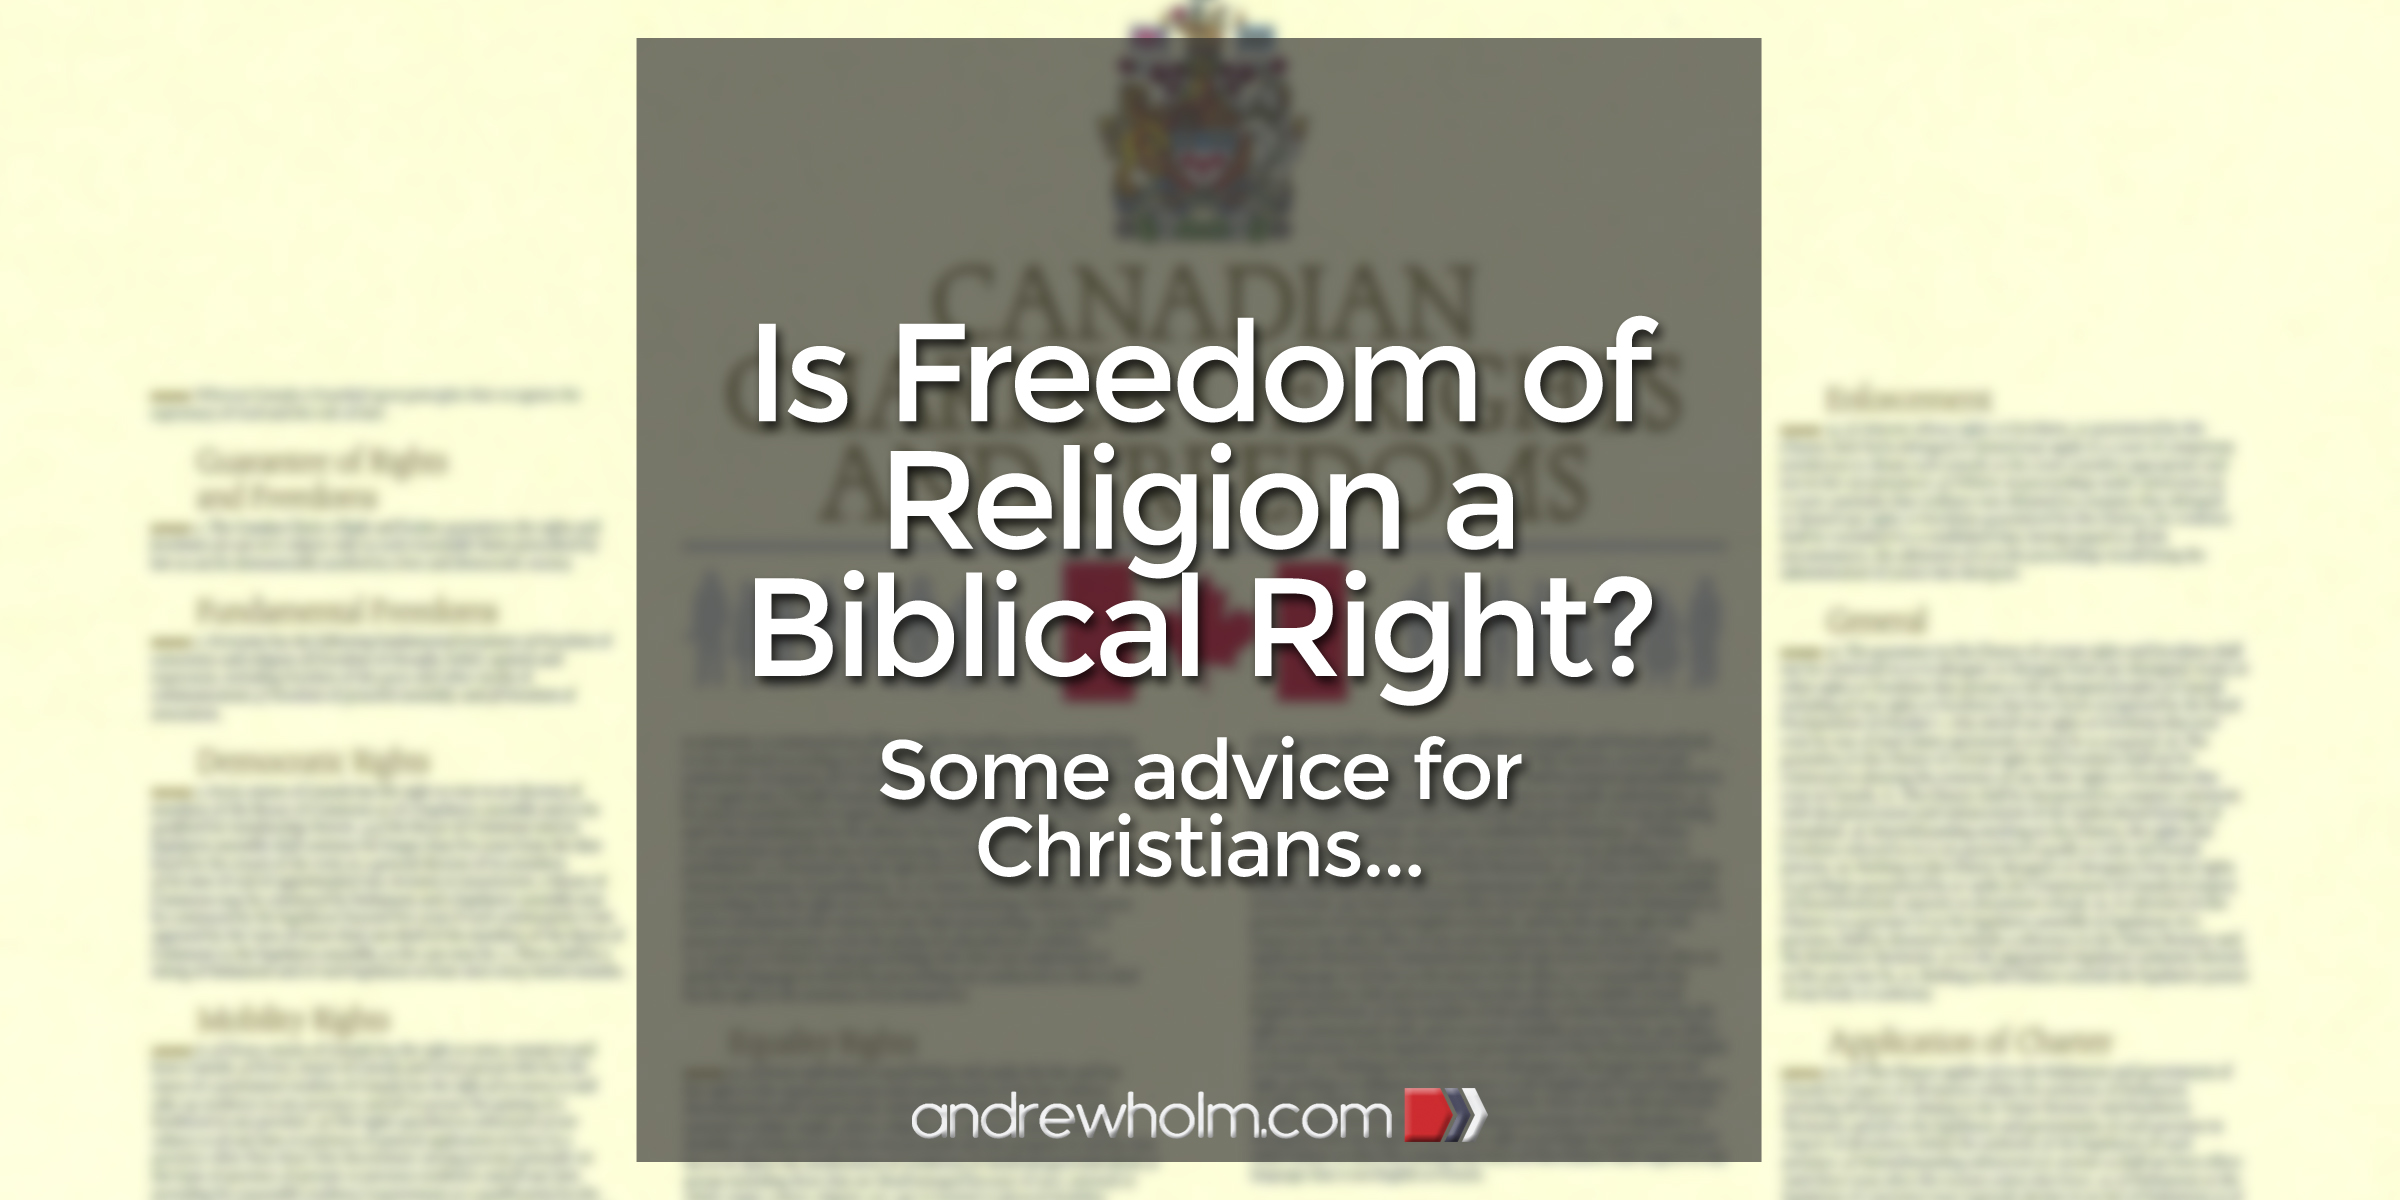 Is Freedom of Religion a Biblical Right?